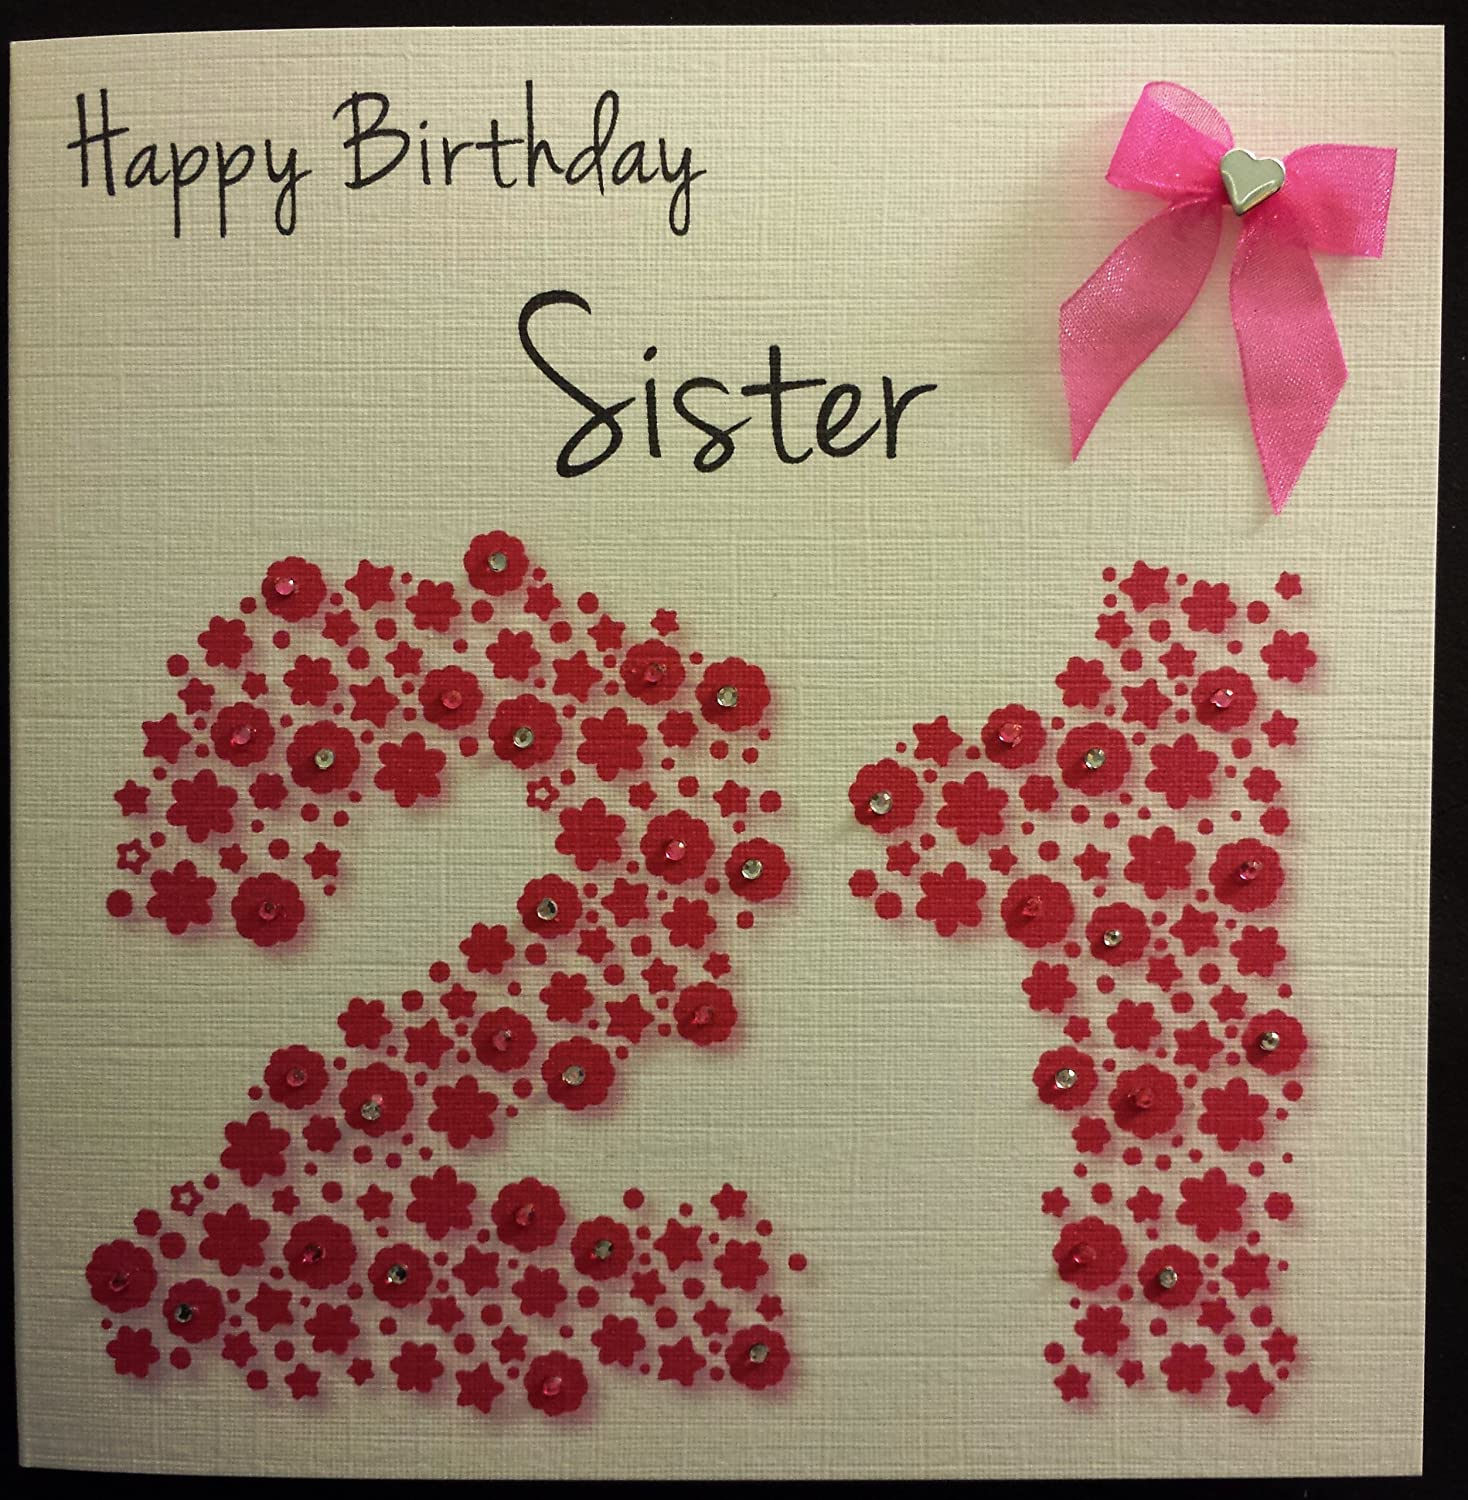 Happy Birthday Card Sister 21st Hot Pink Flowerbed Handmade – Sister 21st Birthday Card